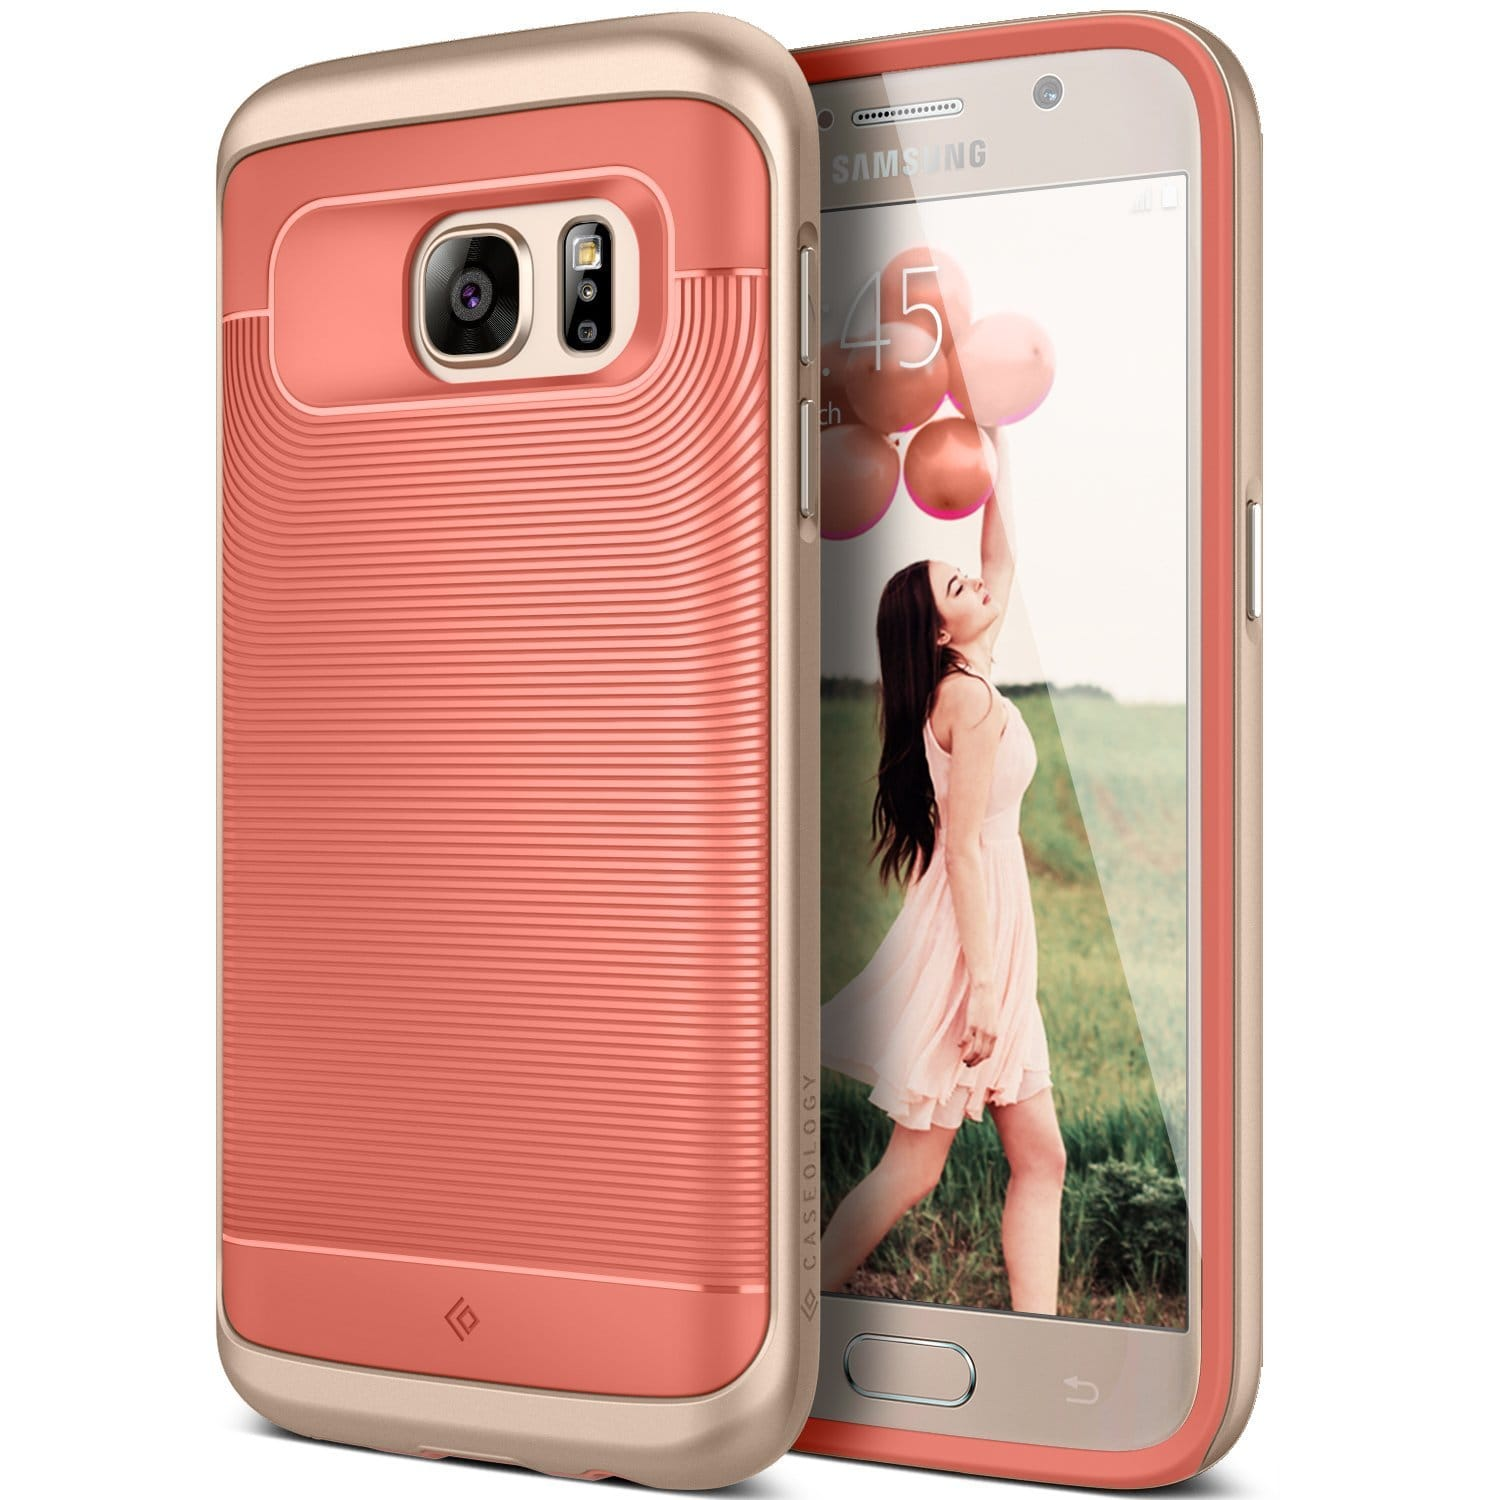 Caseology Cases: Galaxy S7, S7 Edge, Note 5, iPhone SE, 6, 6S, 6 Plus, 6S Plus  $5 + Free Shipping